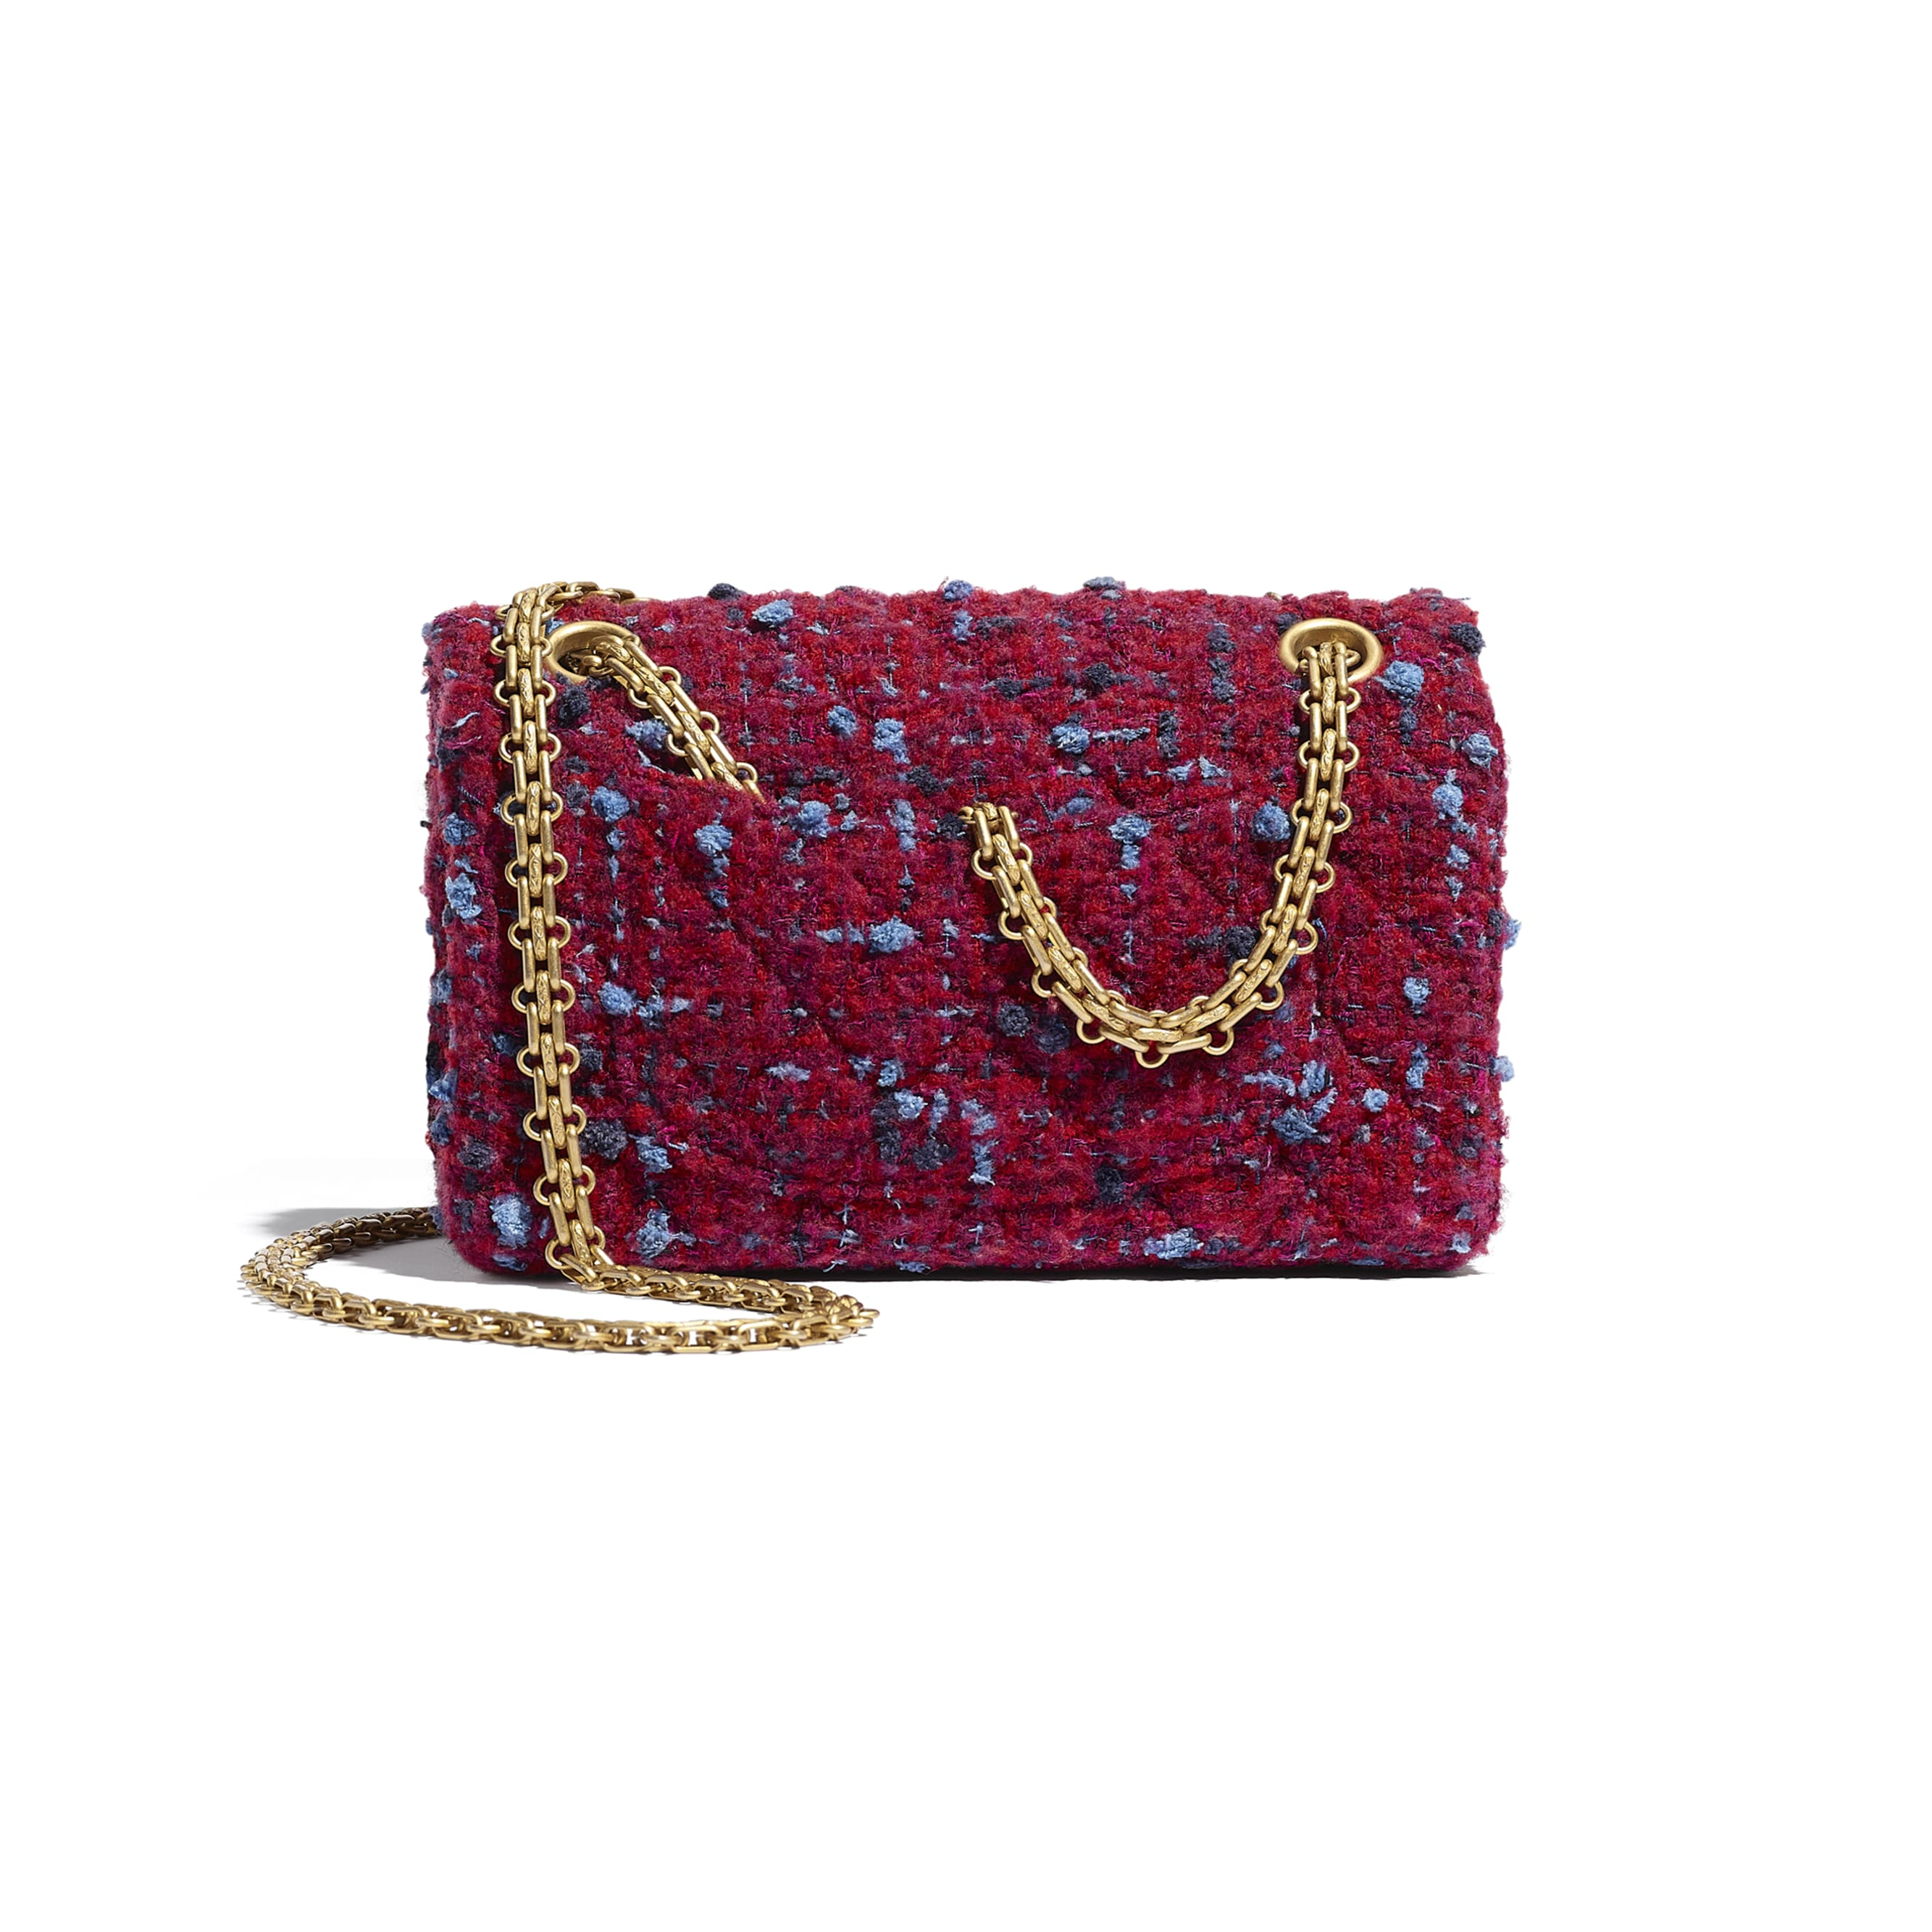 Mini 2.55 Handbag - Burgundy, Blue & Grey - Tweed & Gold Metal - CHANEL - Alternative view - see standard sized version